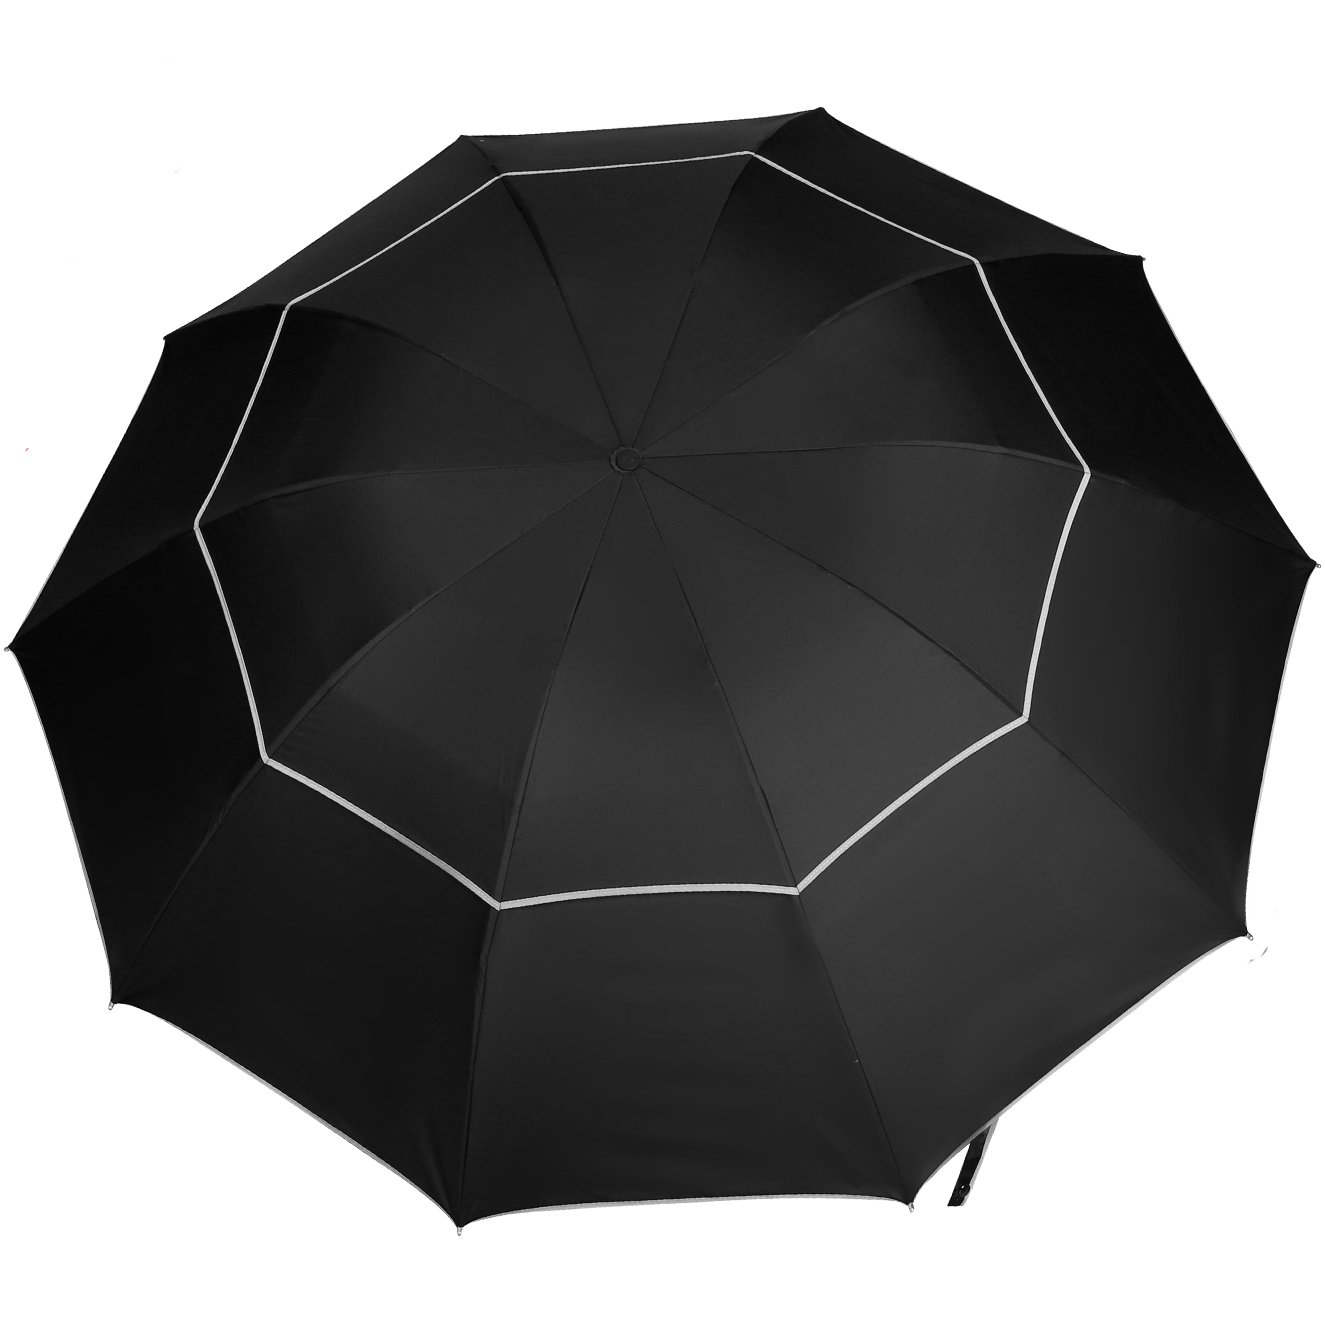 63 Inch Extra Large Golf Umbrella, Folding Travel Umbrella with Reflective Effect, Wind Vented Double Canopy   B077P1HZ48